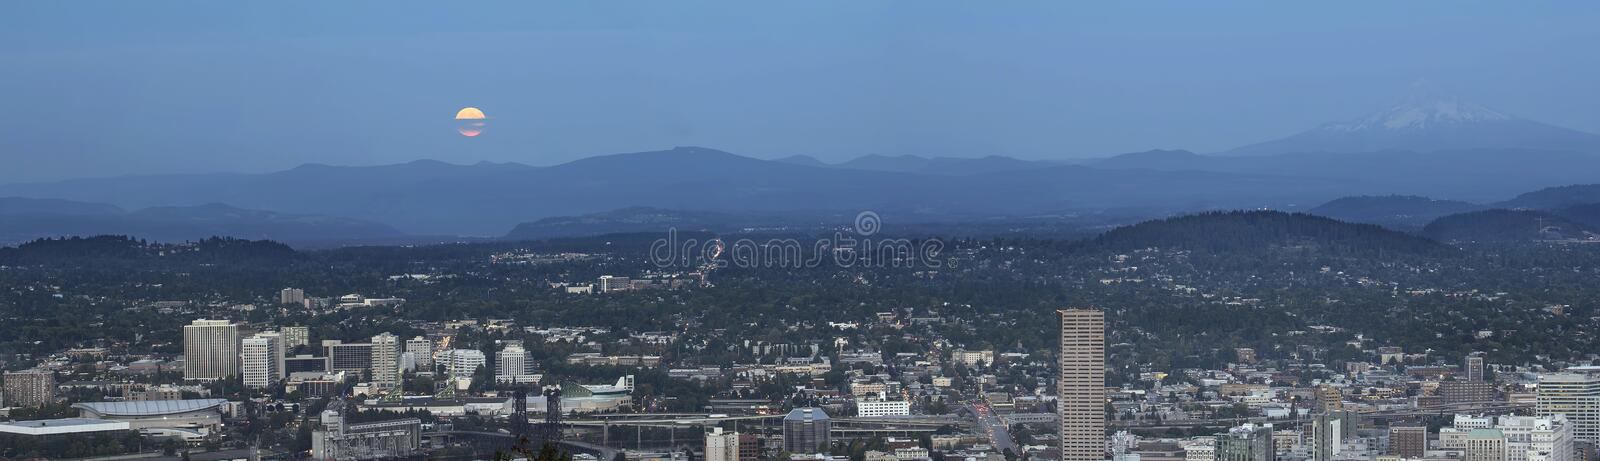 Harvest Full Moon Over Portland Panorama stock photography